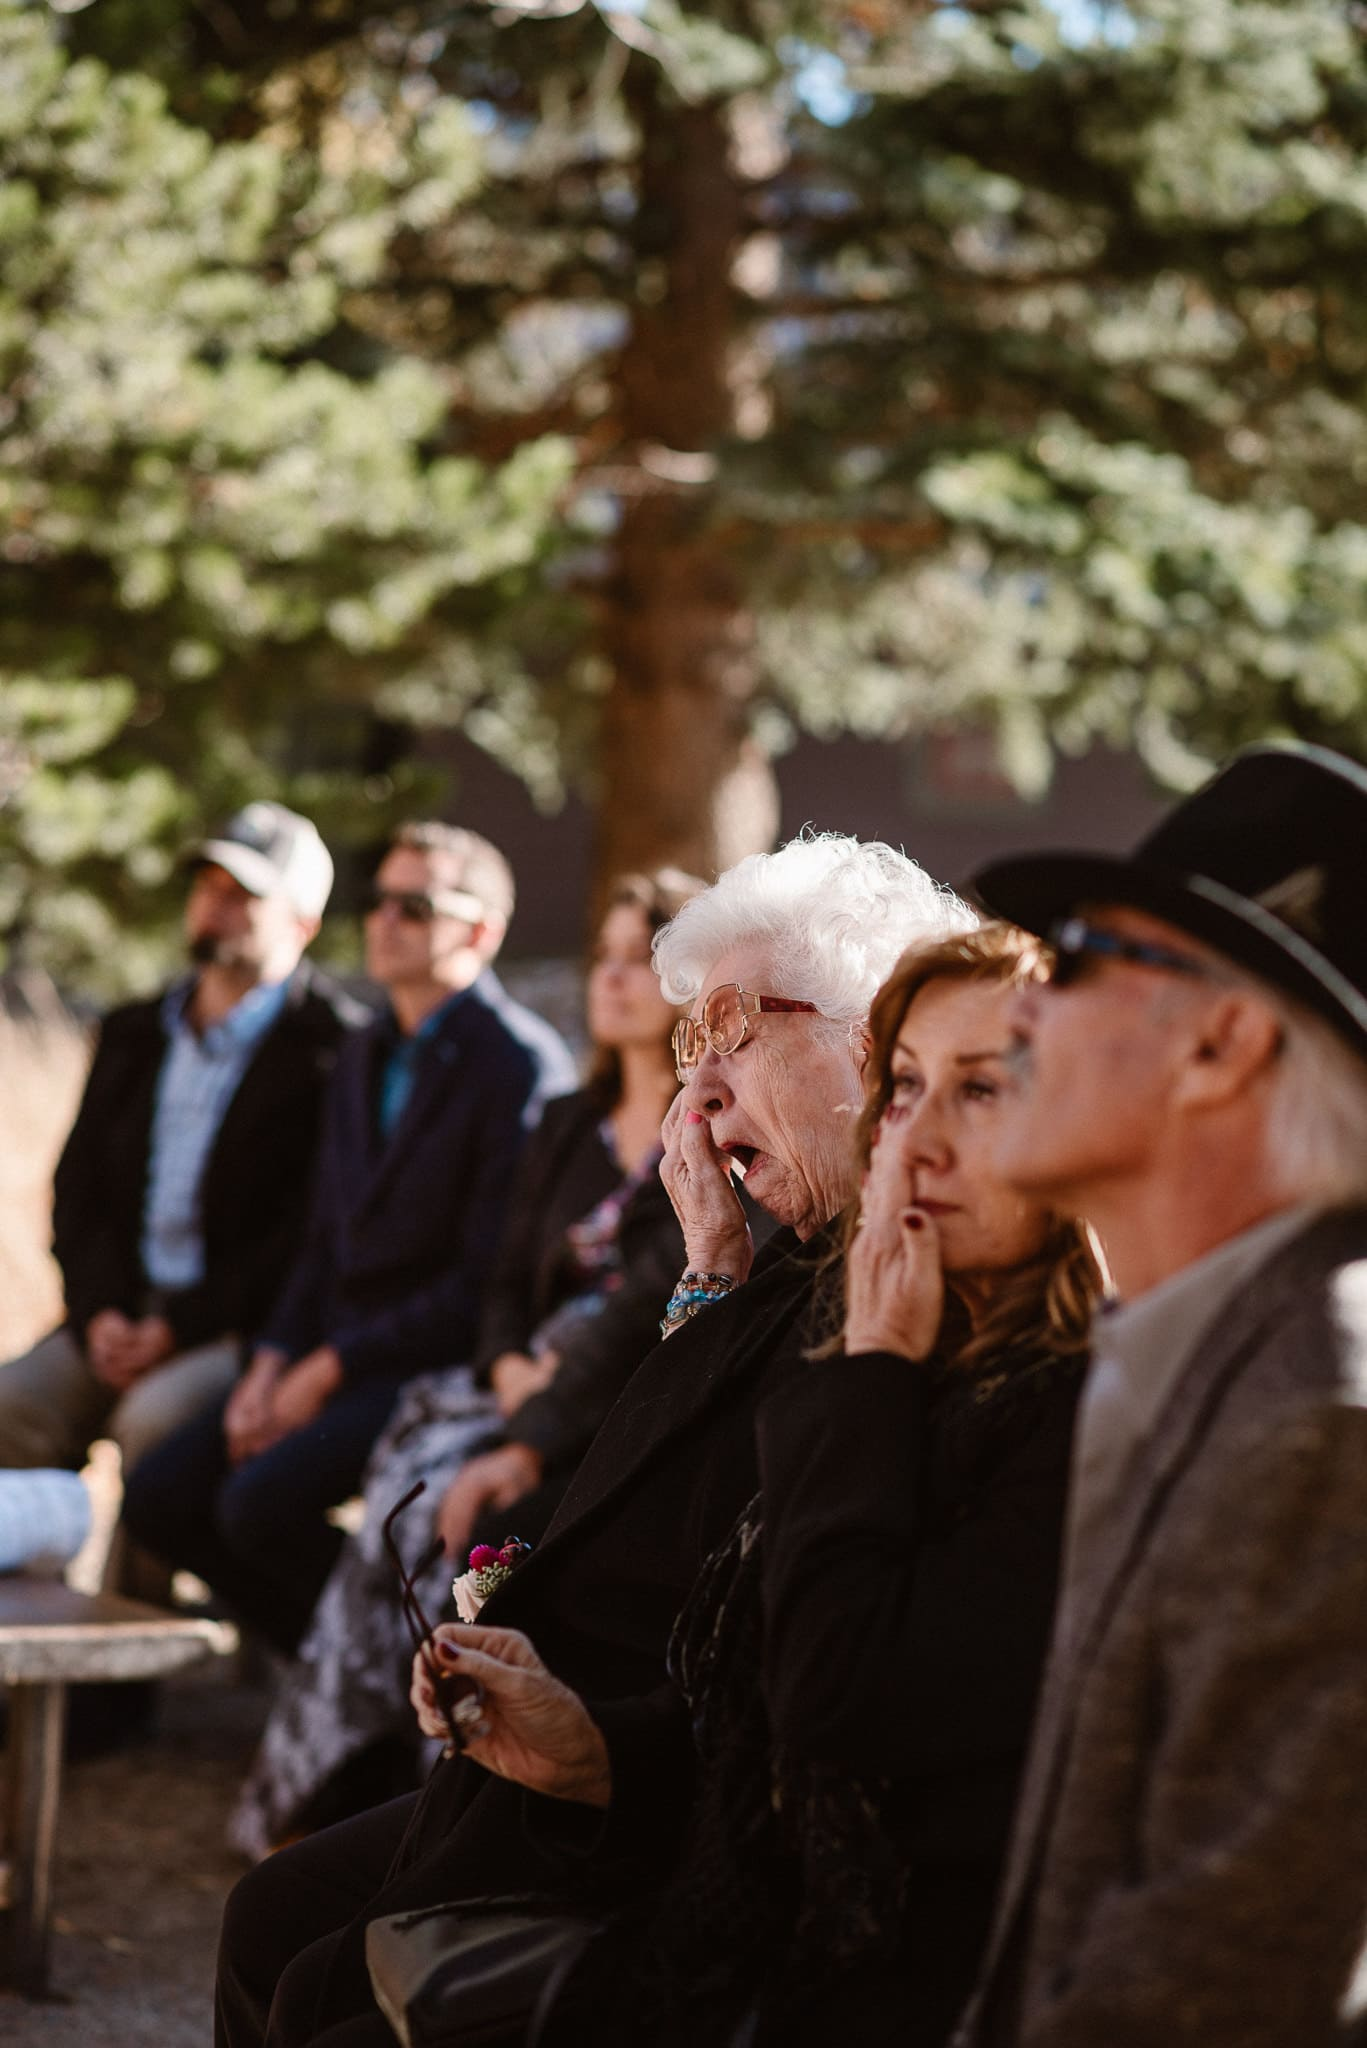 Silverthorne Pavilion wedding ceremony, Colorado wedding photographer, outdoor wedding ceremony, Colorado mountain wedding venues, family wiping tears